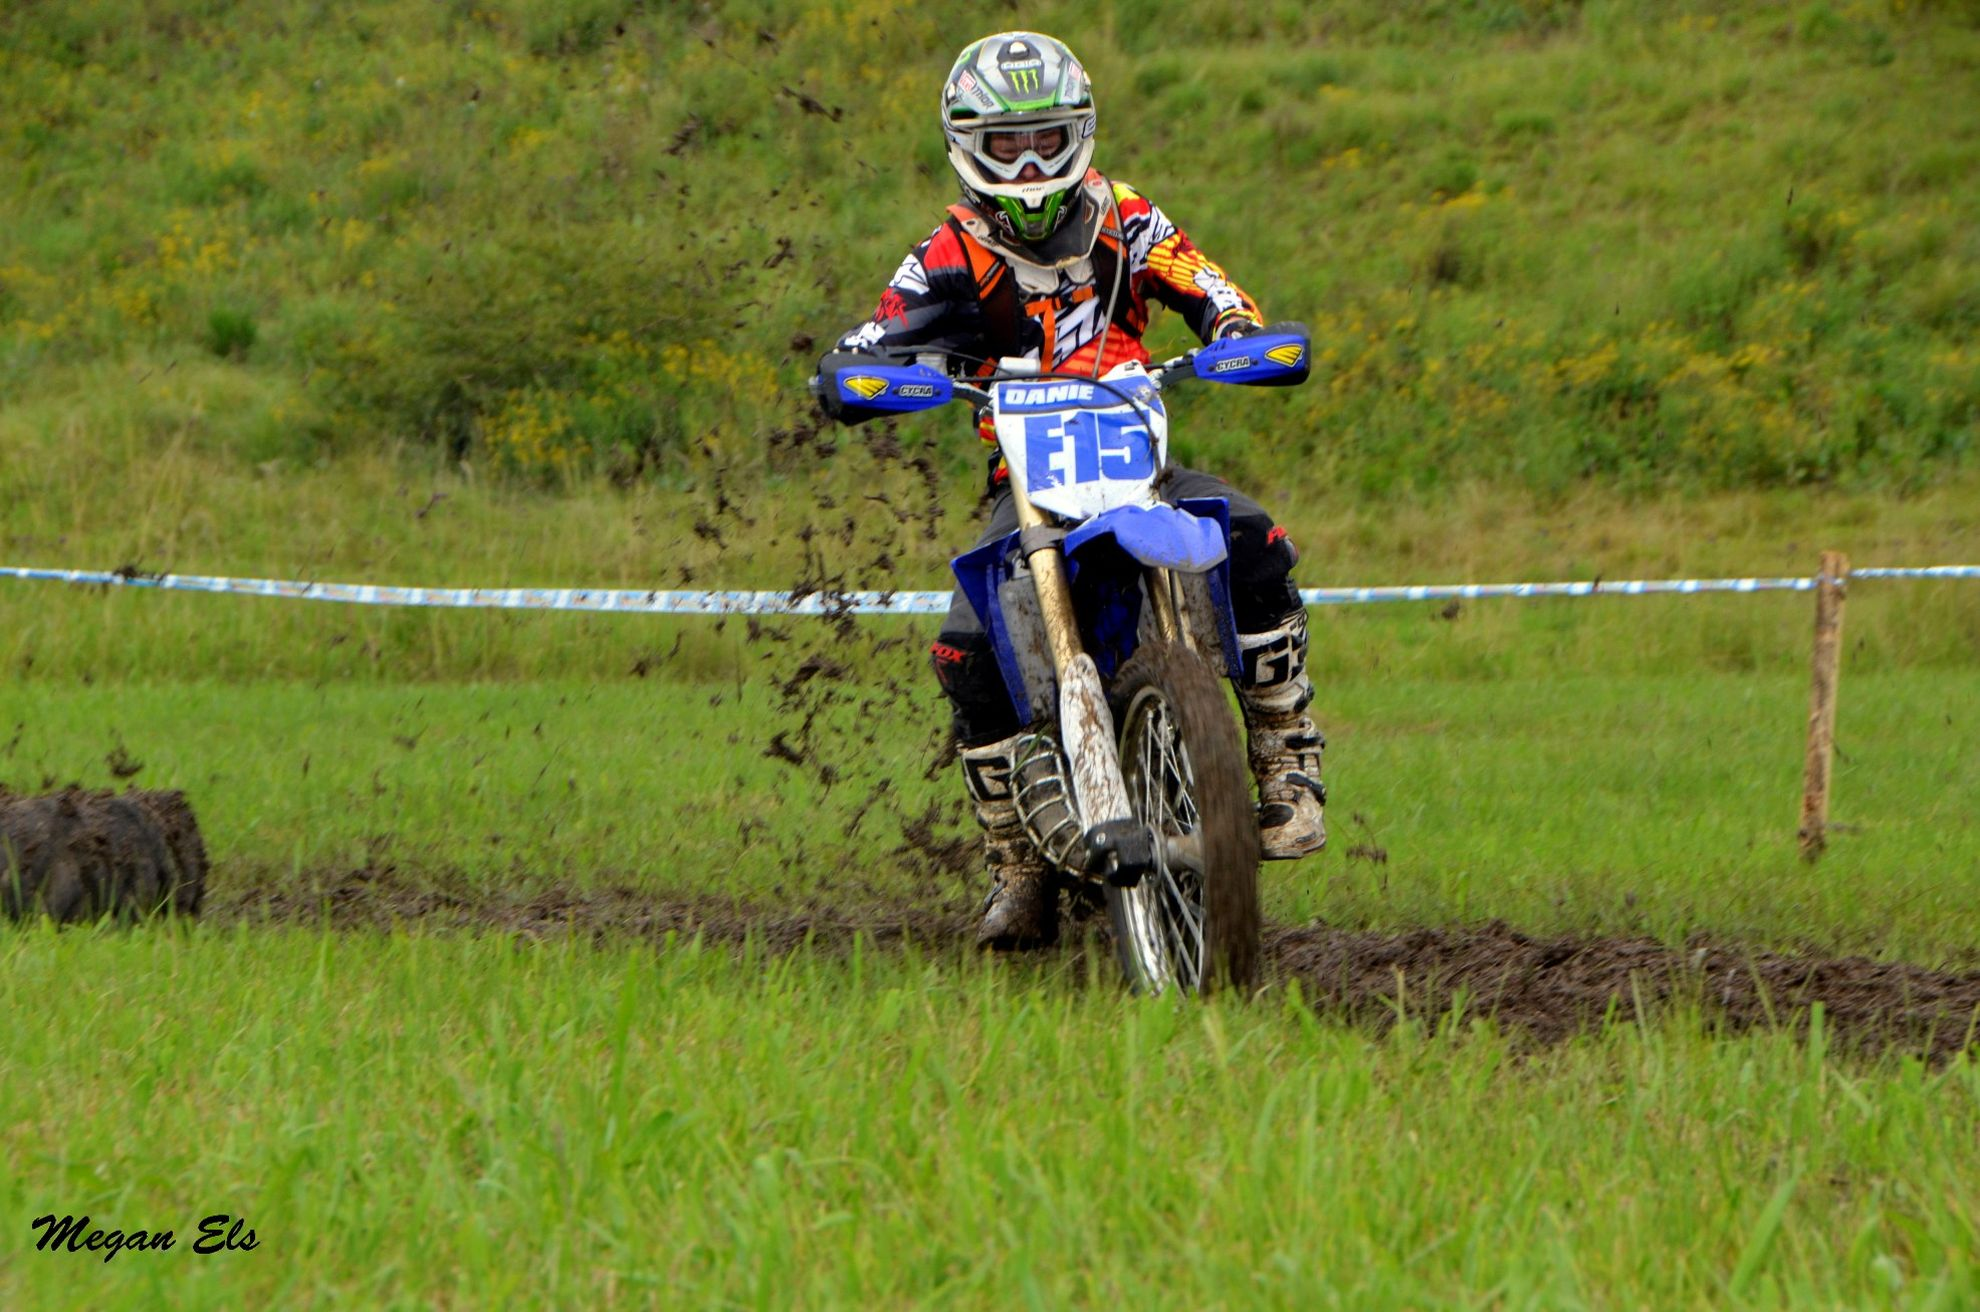 BATTLES-TO-CONTINUE-AS-NATIONAL-ENDURO-MOTORCYCLE-CHAMPIONSHIP-REACHES-HALFWAY-MARK1-daniel-van-zyl